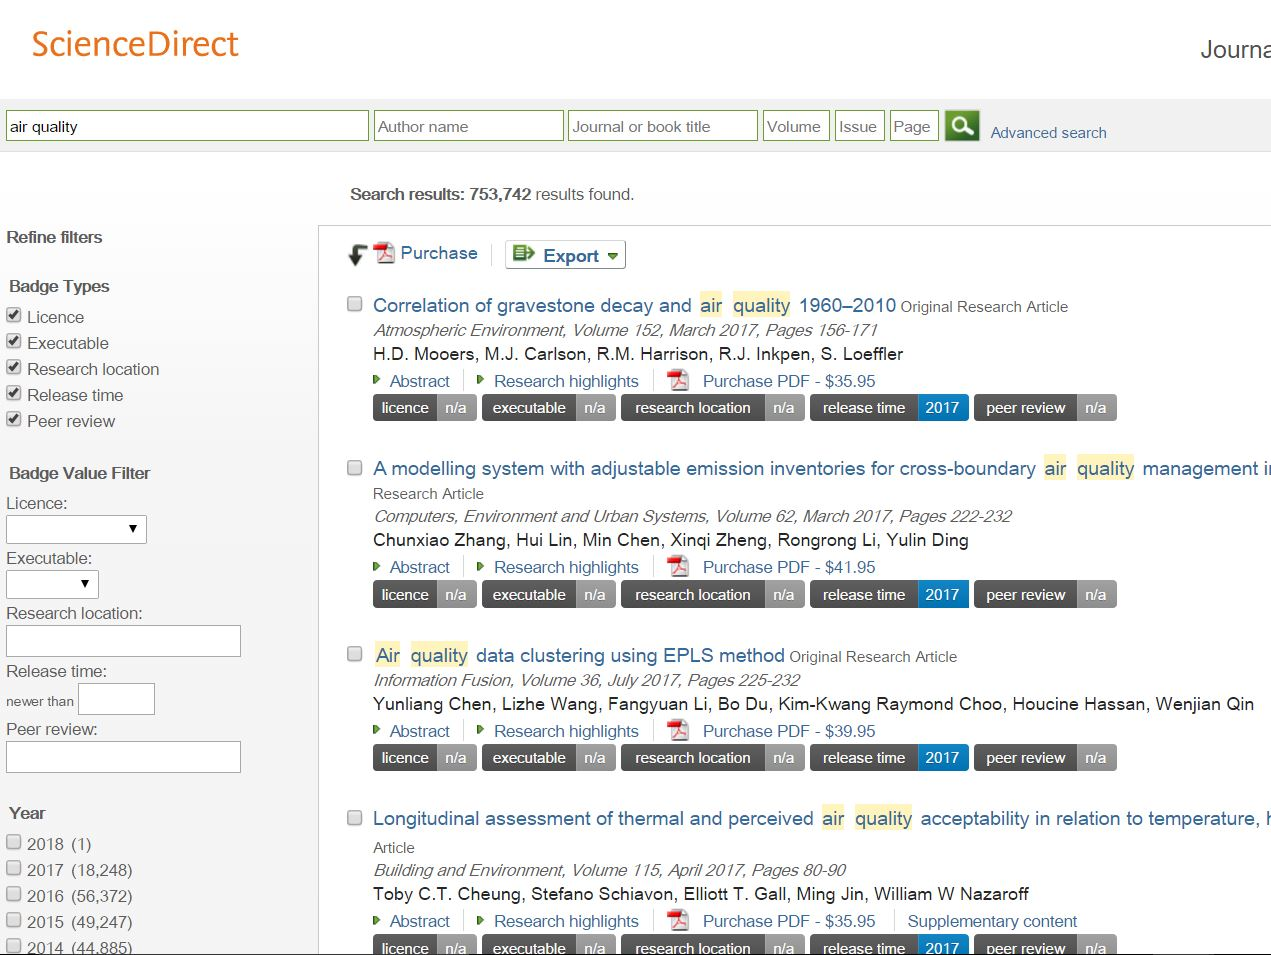 Chrome Extension Screenshots/ScienceDirect.JPG